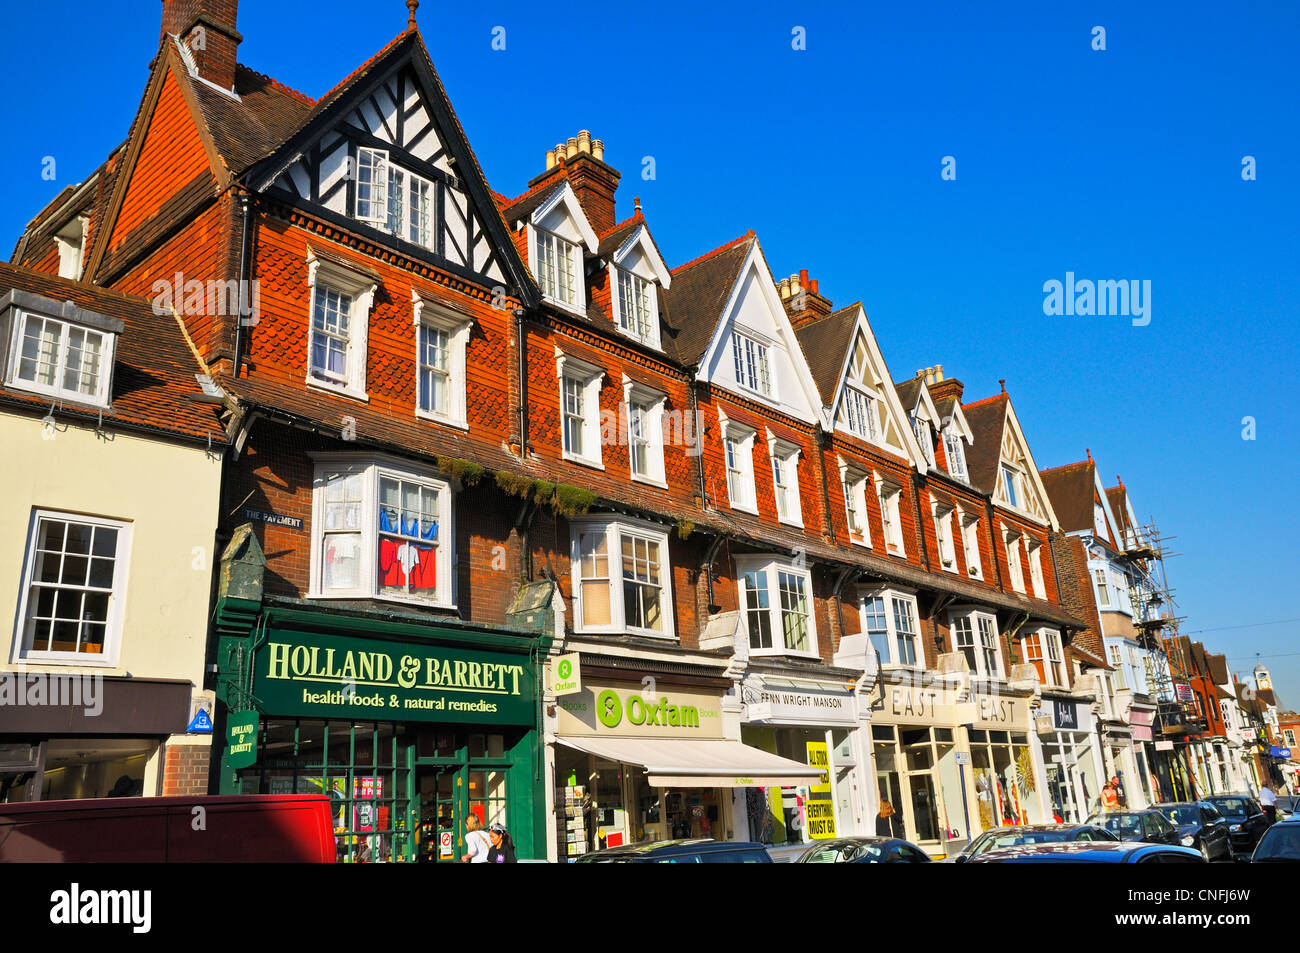 Shops along Reigate High Street, Surrey, England, UK - Stock Image